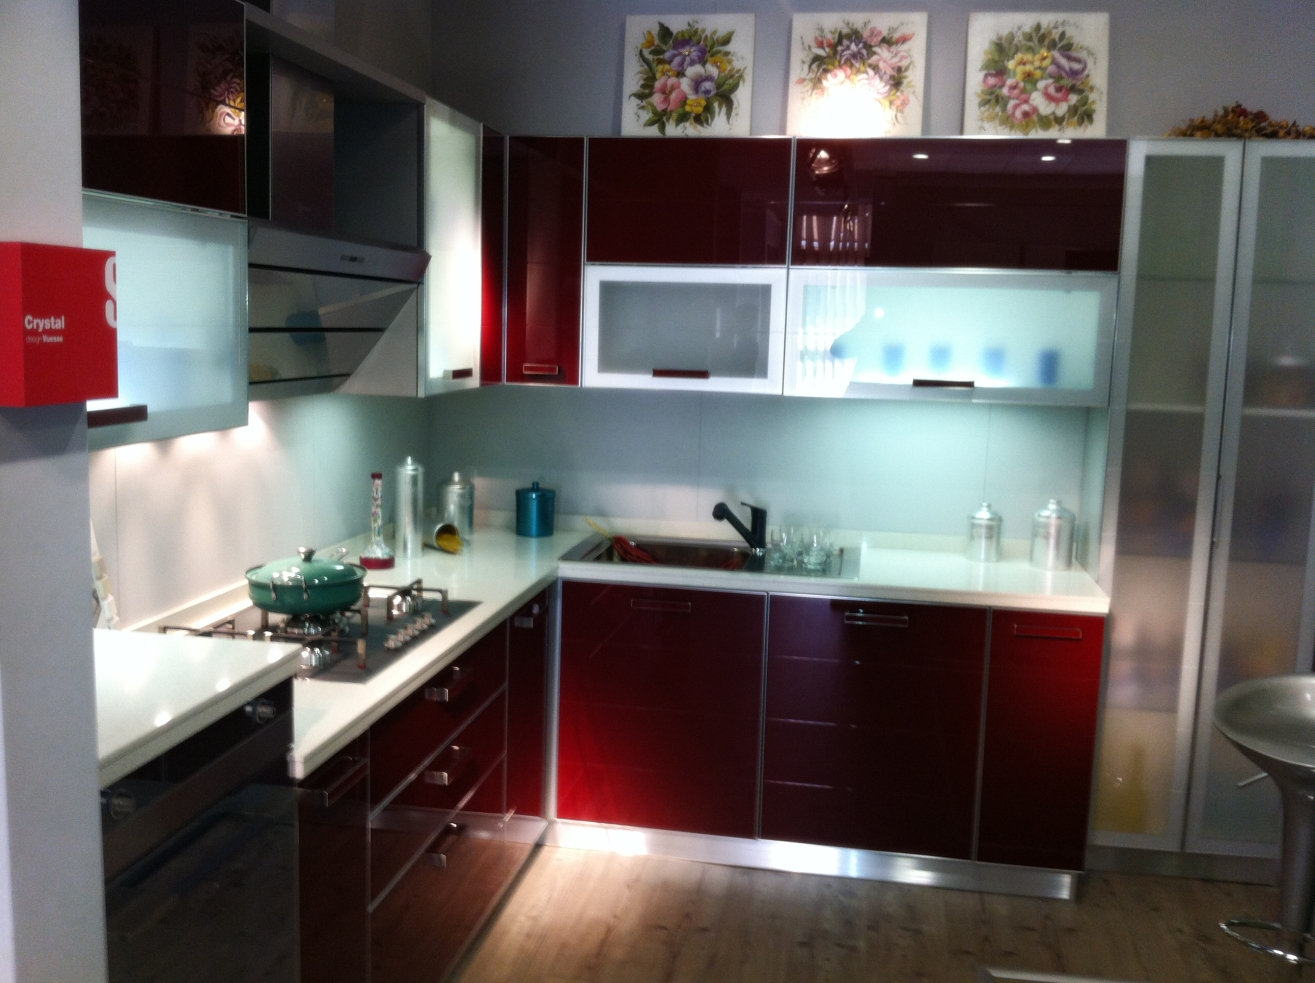 Cucine Moderne Bianche E Rosse. Latest Lumina Bertolotto Porte With ...